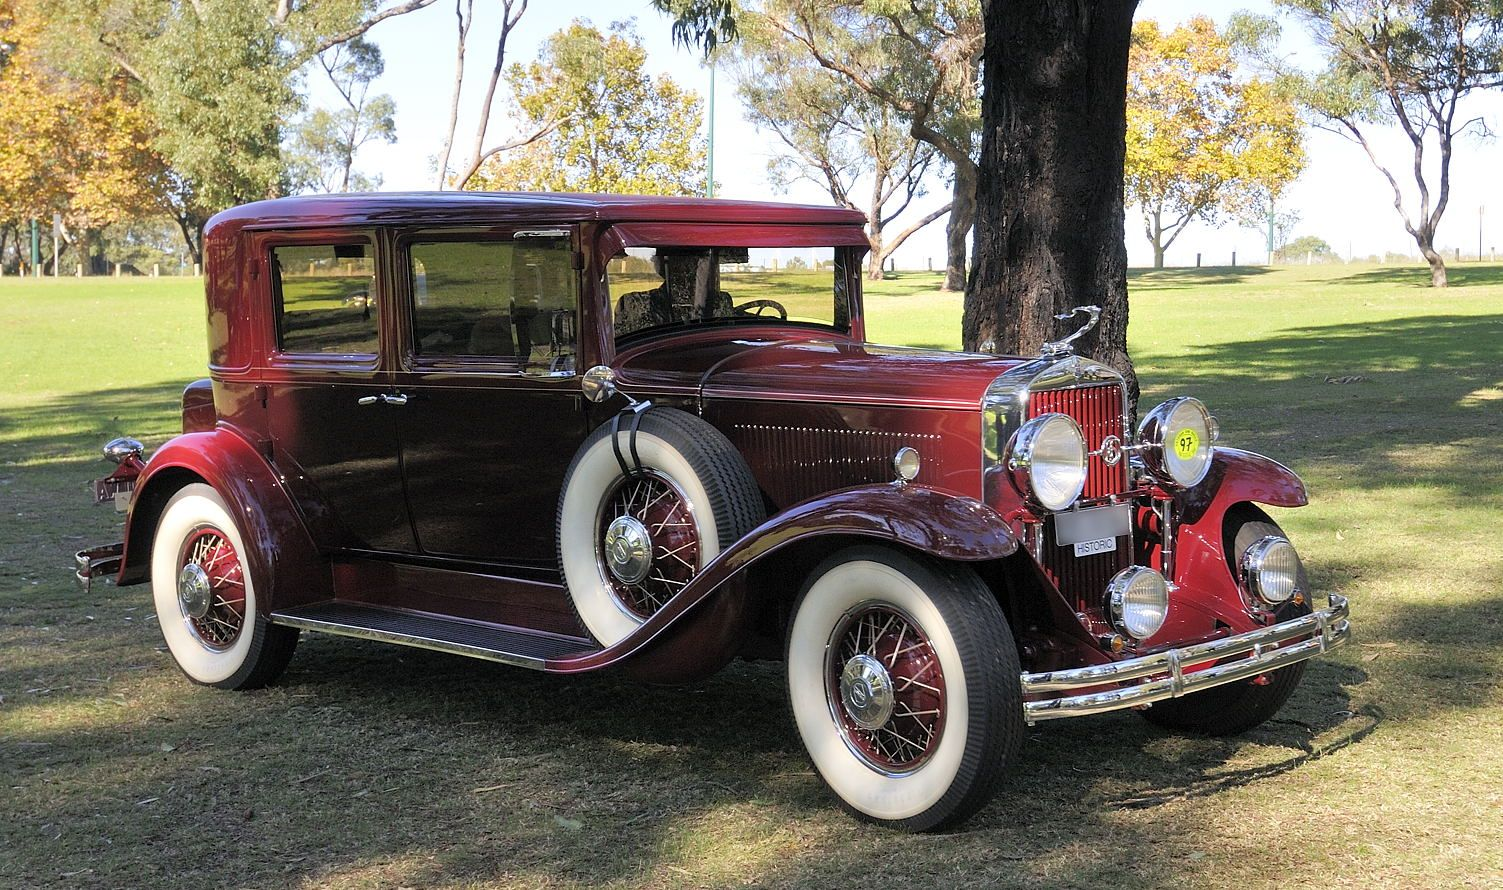 General Motors La Salle was brought onto the scene in 1927 once